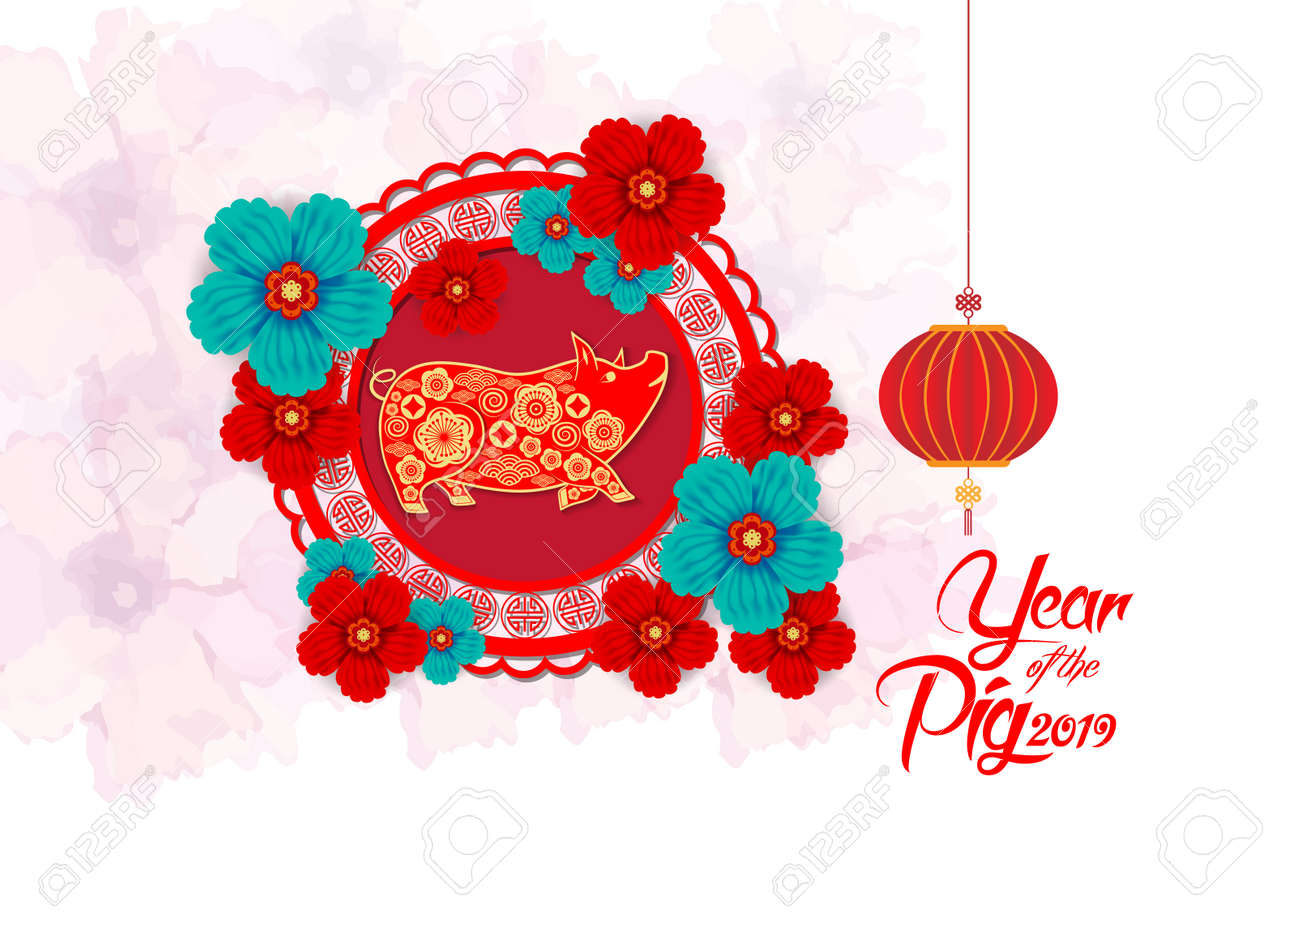 Happy Chinese New Year 2019 Year Of The Pig Paper Cut Style